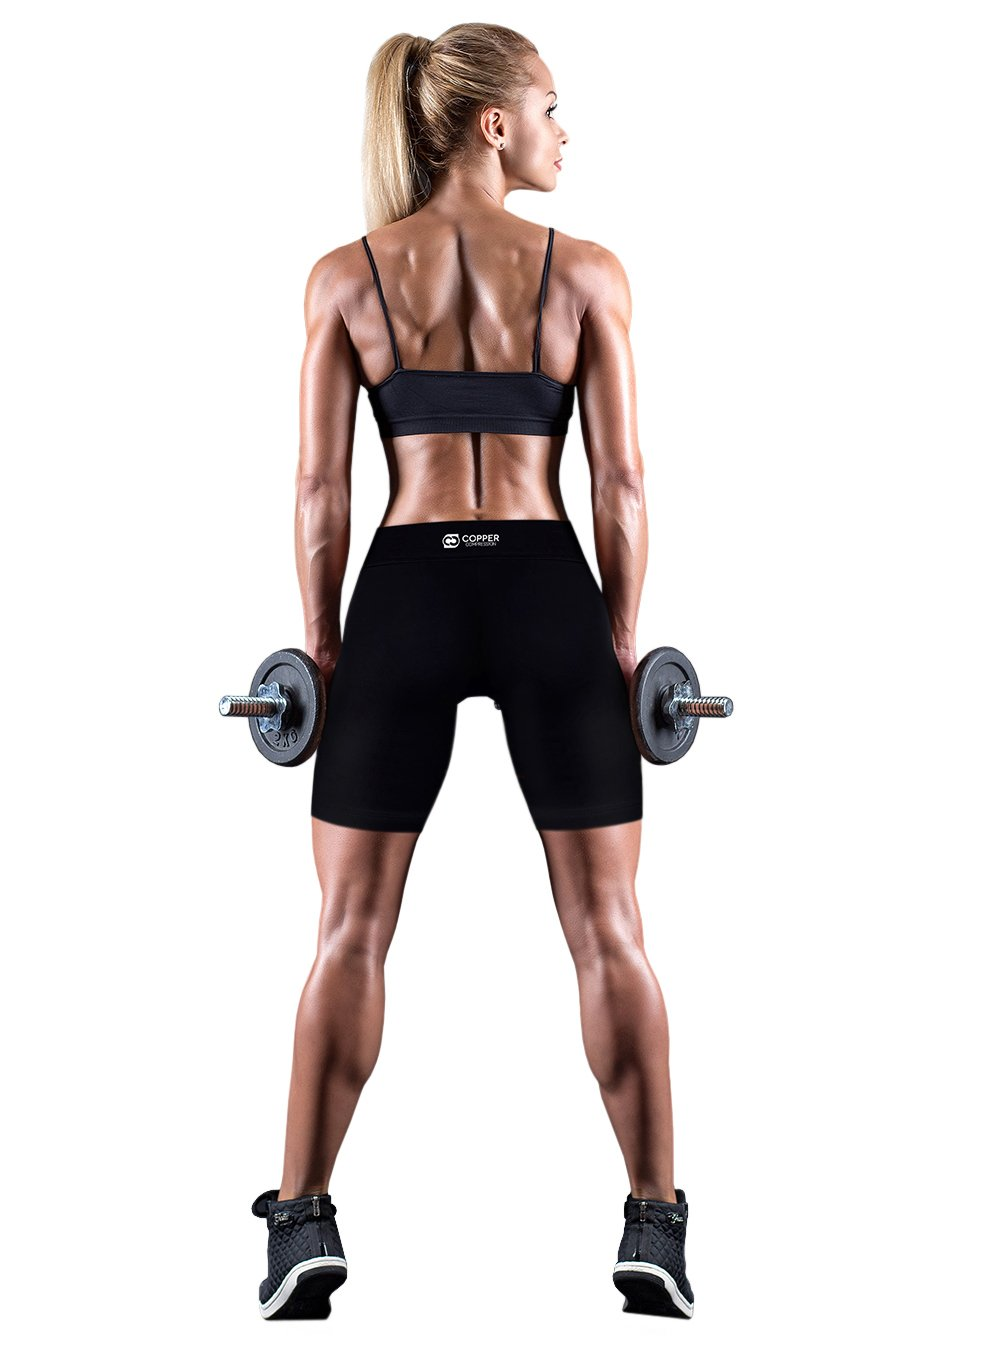 Copper Compression Womens Shorts/Yoga Hot Pants/Tight Shorts. Guaranteed Highest Copper Content. #1 Copper Infused Active Fit Athletic/Activewear/Athleisure Form Fitting Black Shorts - L